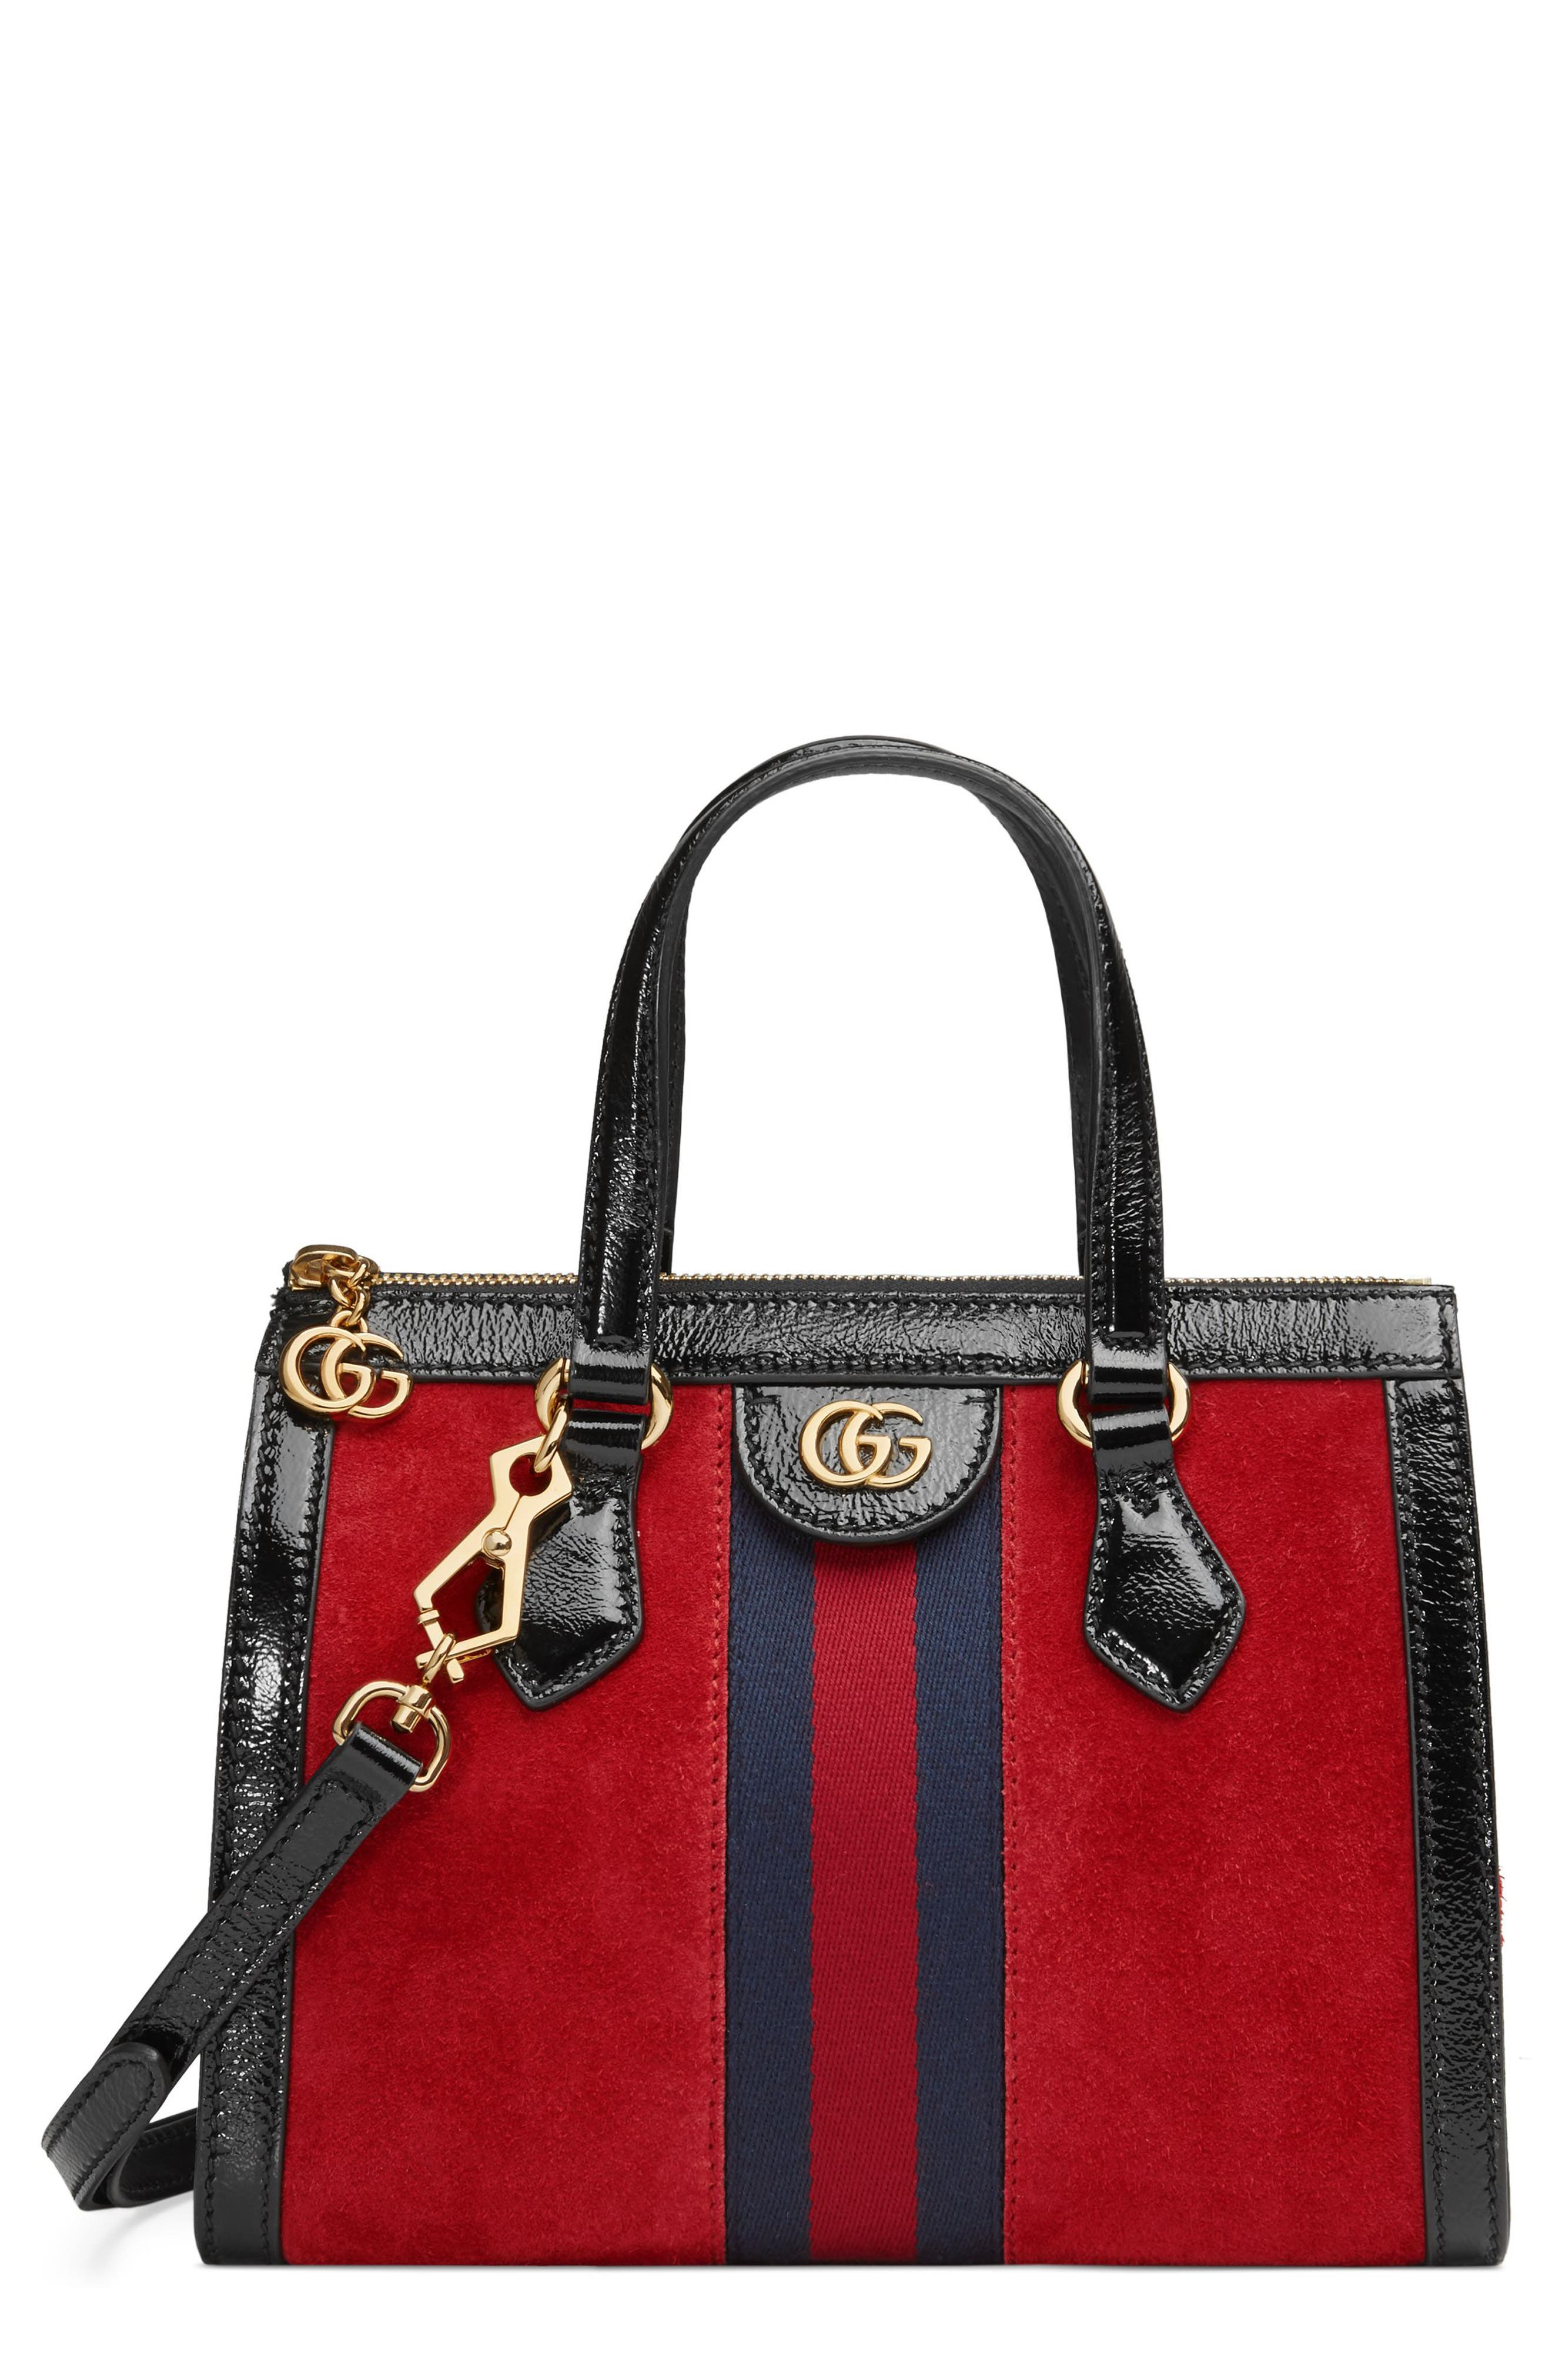 Small Ophidia House Web Suede Satchel,                             Main thumbnail 1, color,                             HIBISCUS RED/ NERO/ BLUE